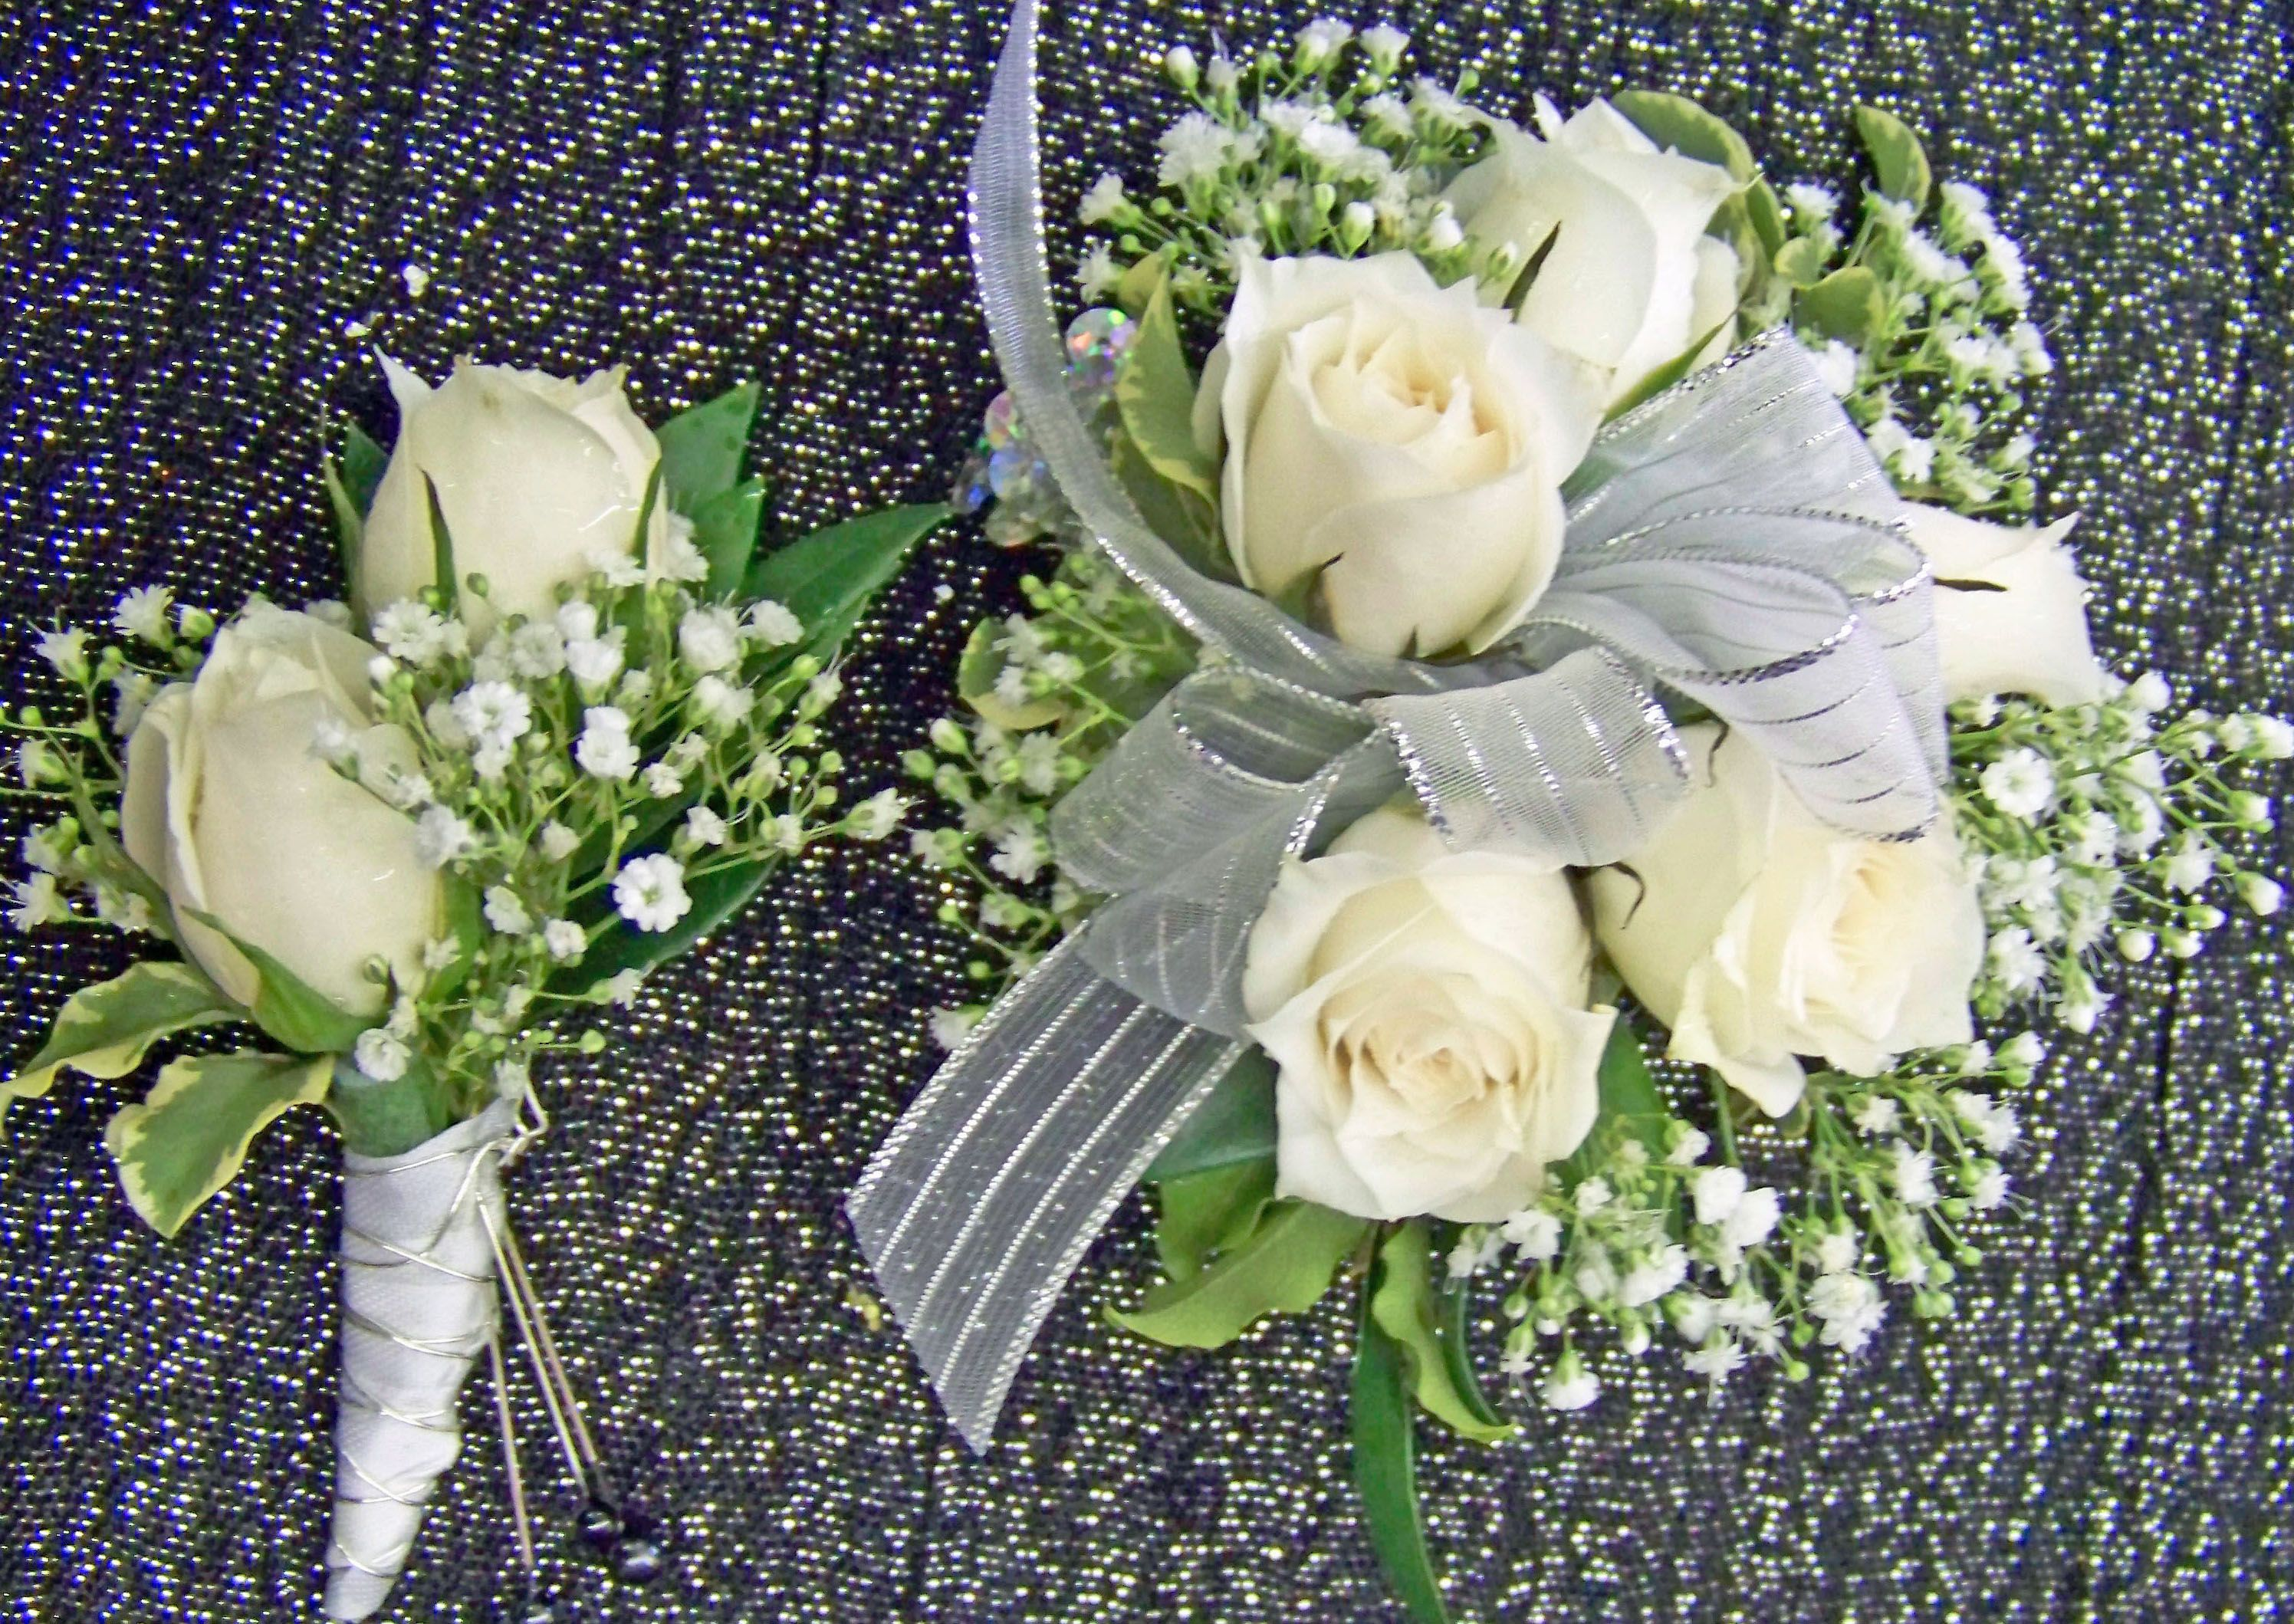 Wrist Corsage Of White Spray Roses & Babies Breath With